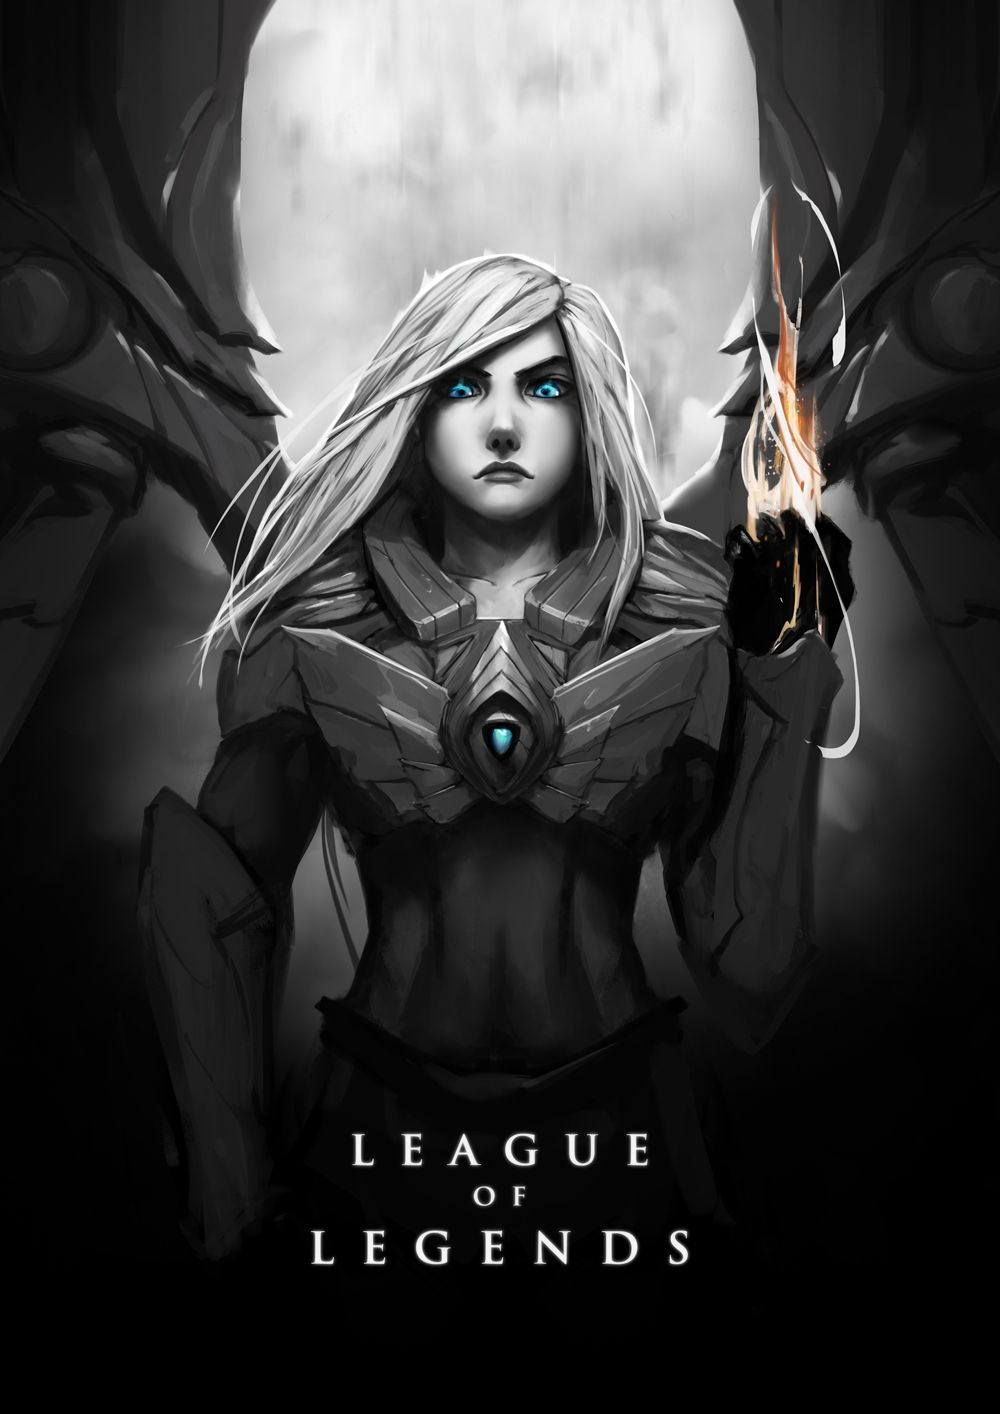 Aetherwing Kayle Lol League Of Legends League Of Legends Elo League Of Legends Poster Aether wing kayle league of legends